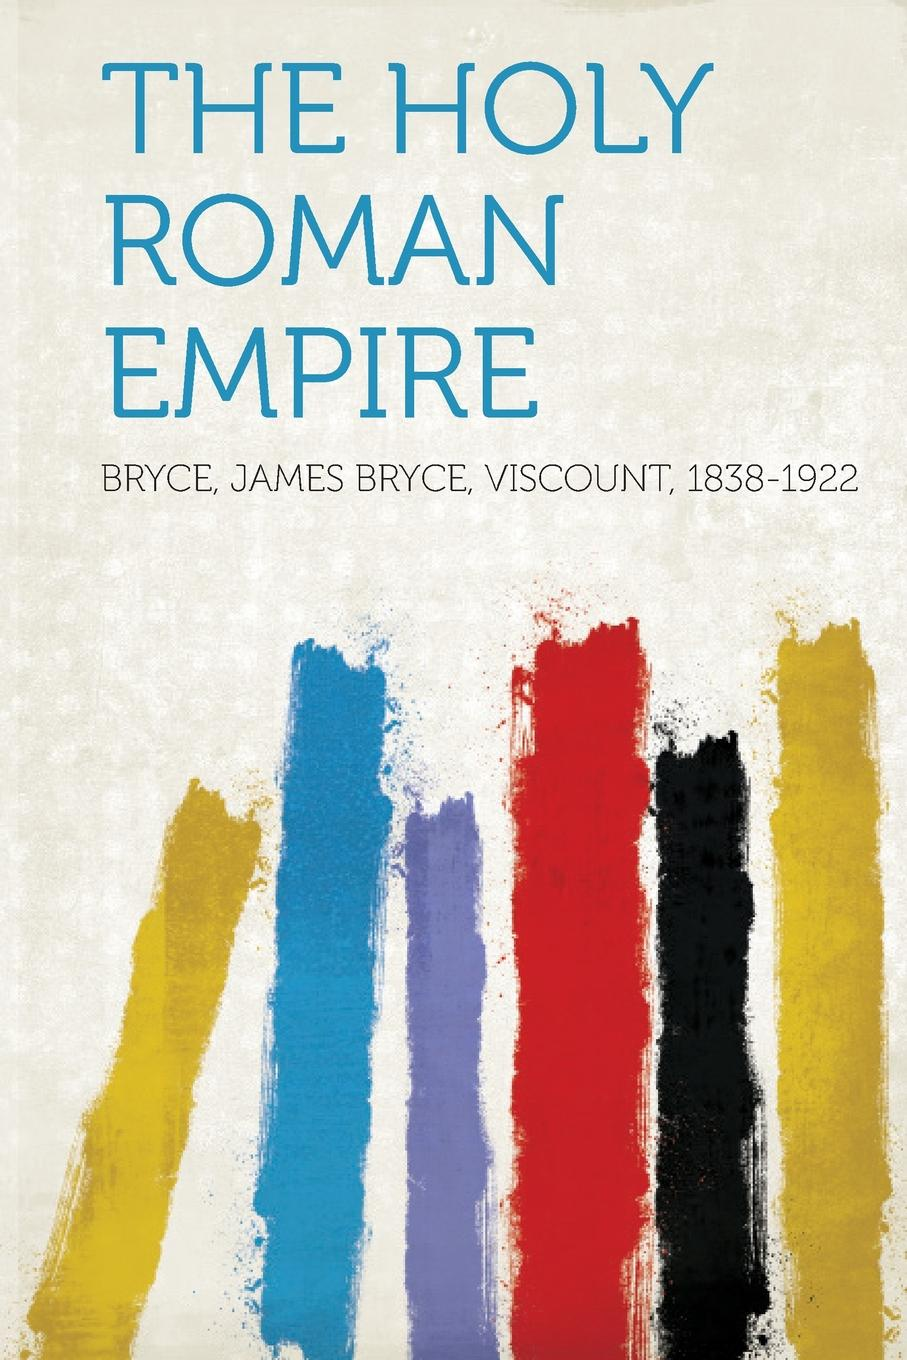 Bryce James Bryce Viscount 1838-1922 The Holy Roman Empire viscount james bryce the holy roman empire